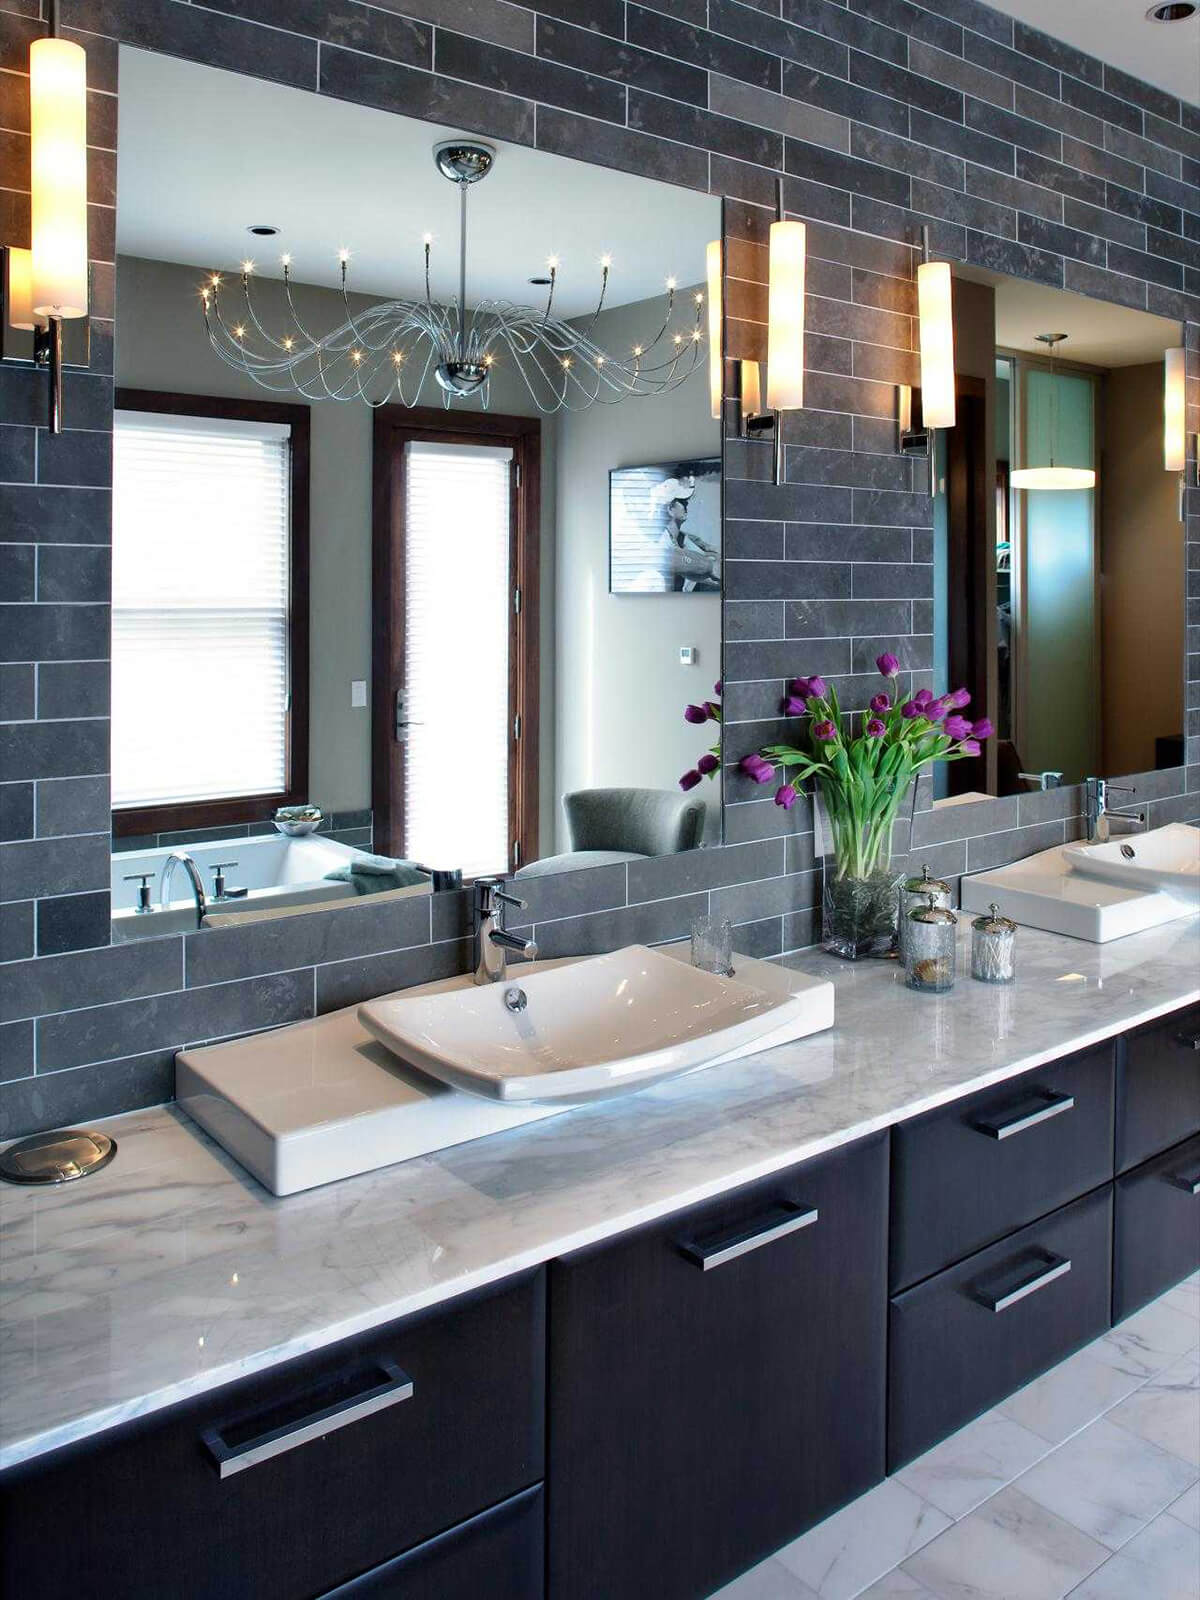 25 Best Bathroom Sink Ideas and Designs for 2019